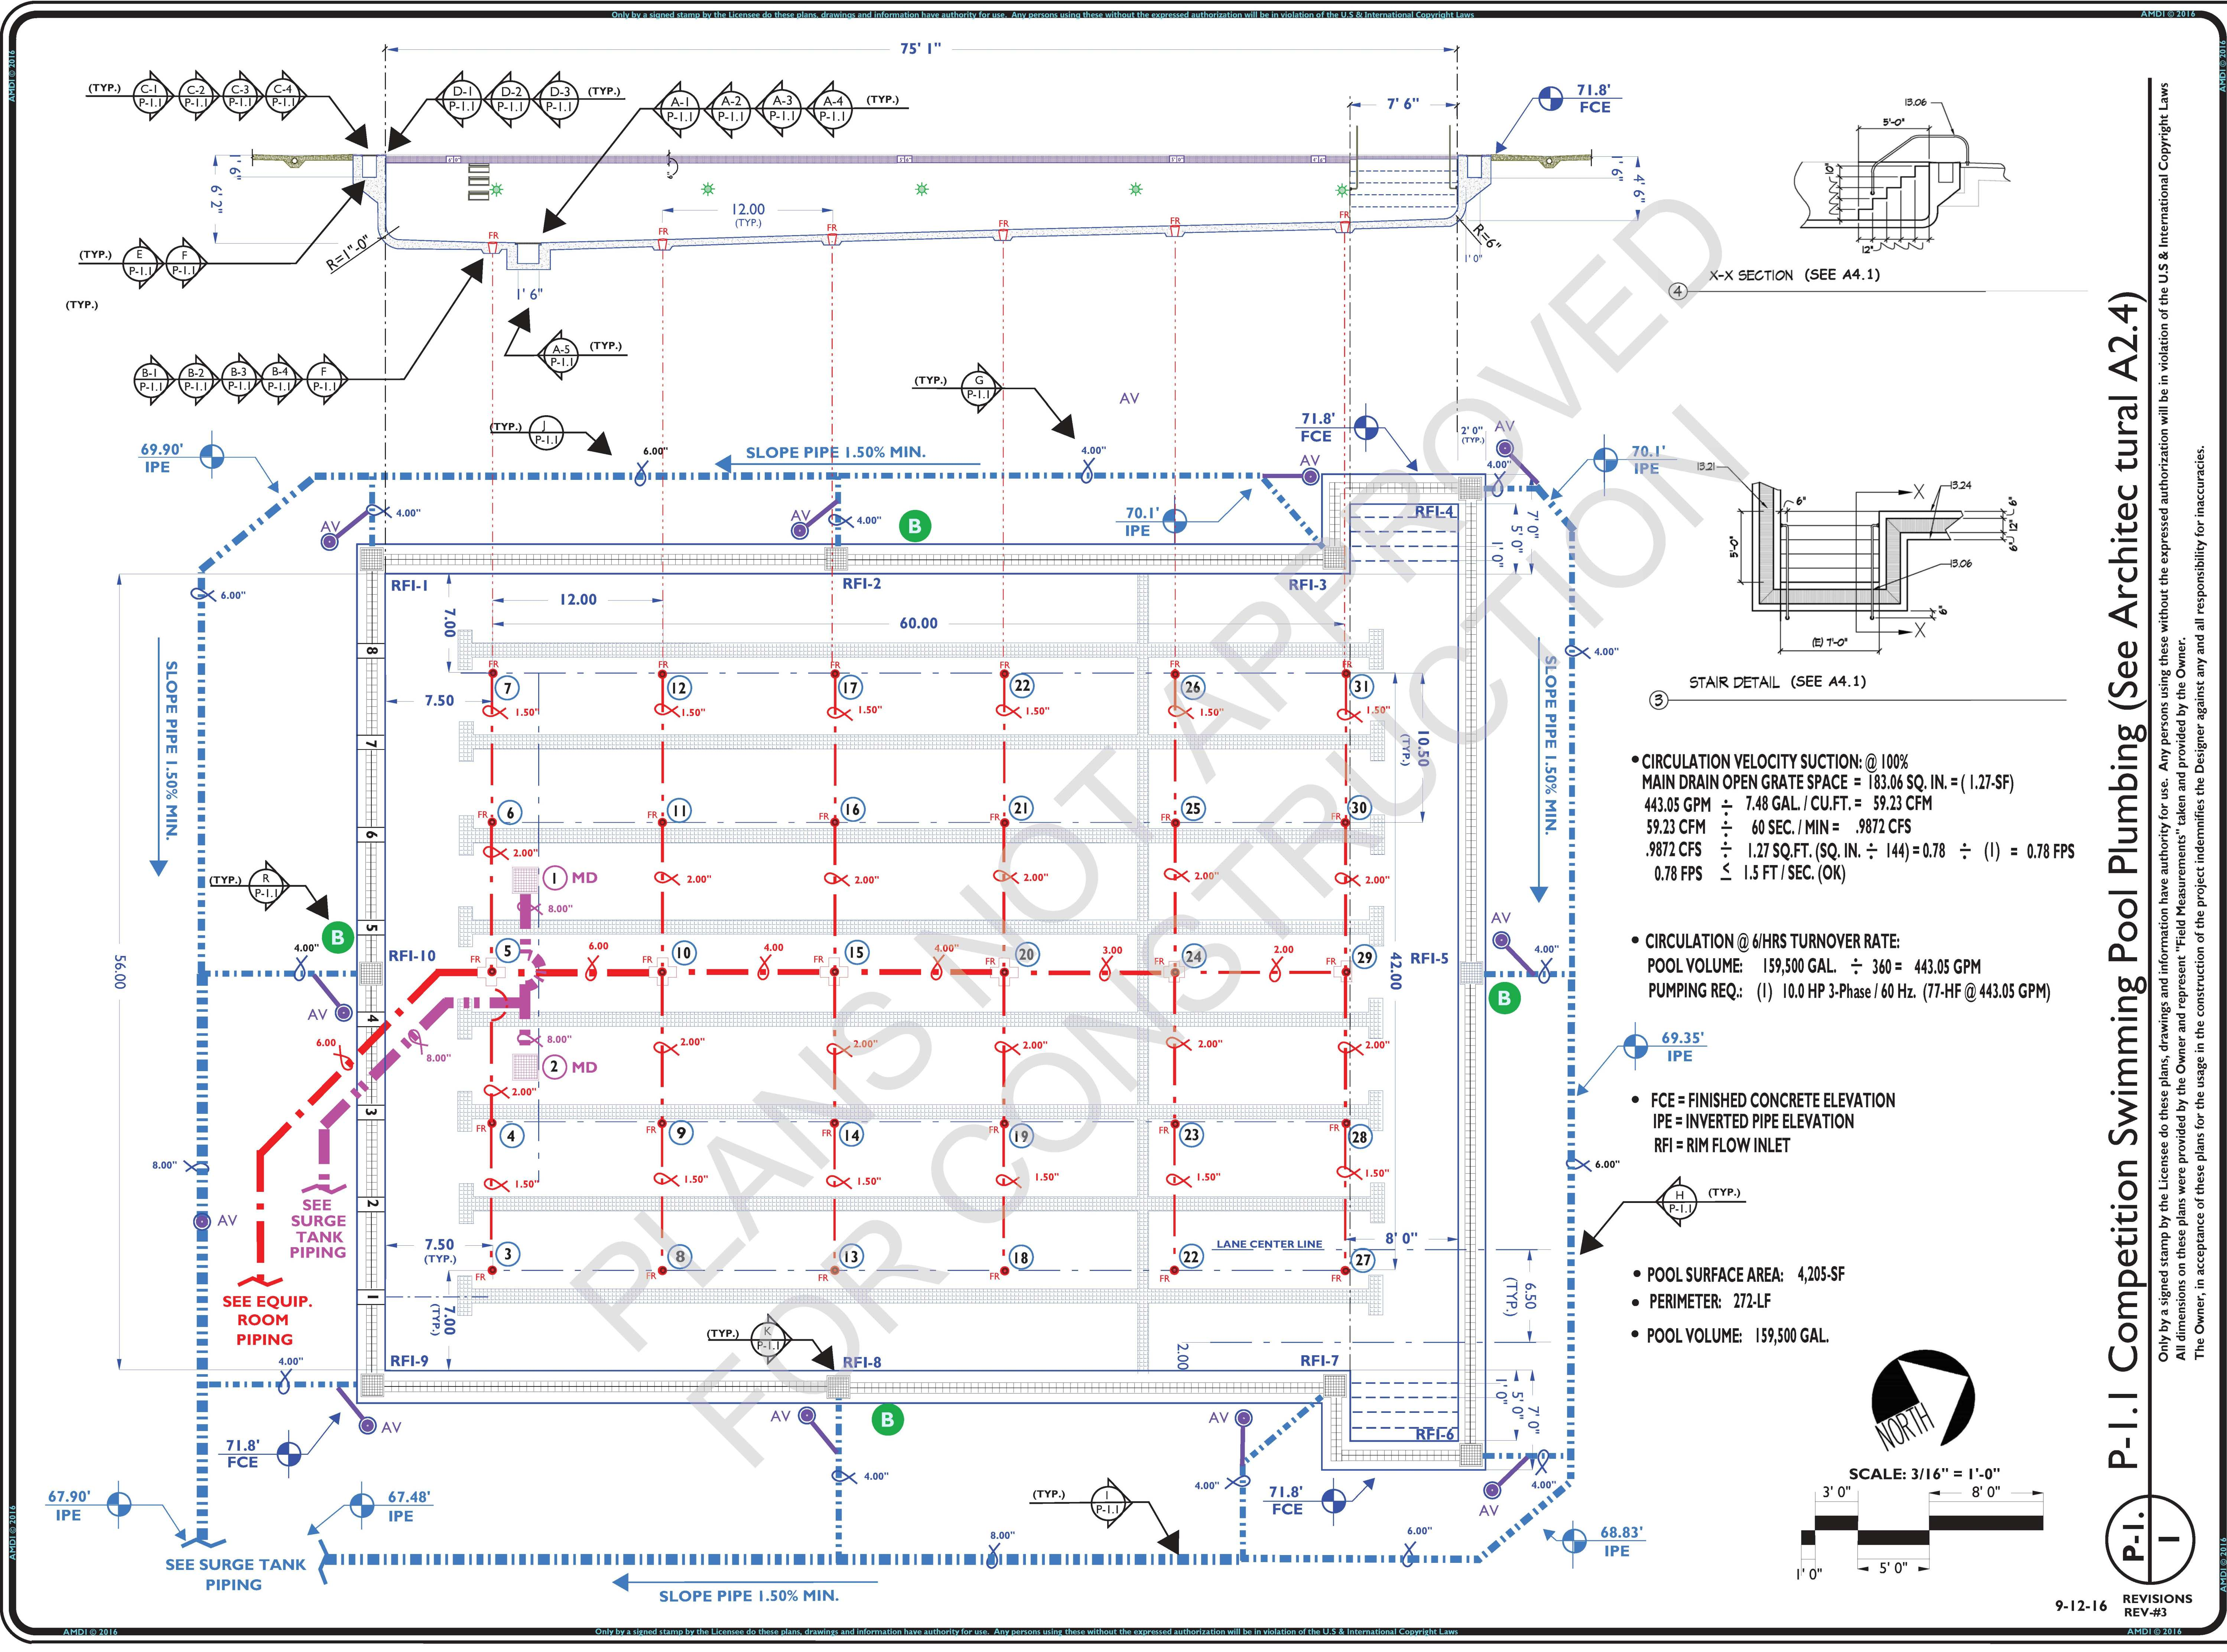 Commercial / Public Pool Plumbing Design | Aquatic Mechanical ...